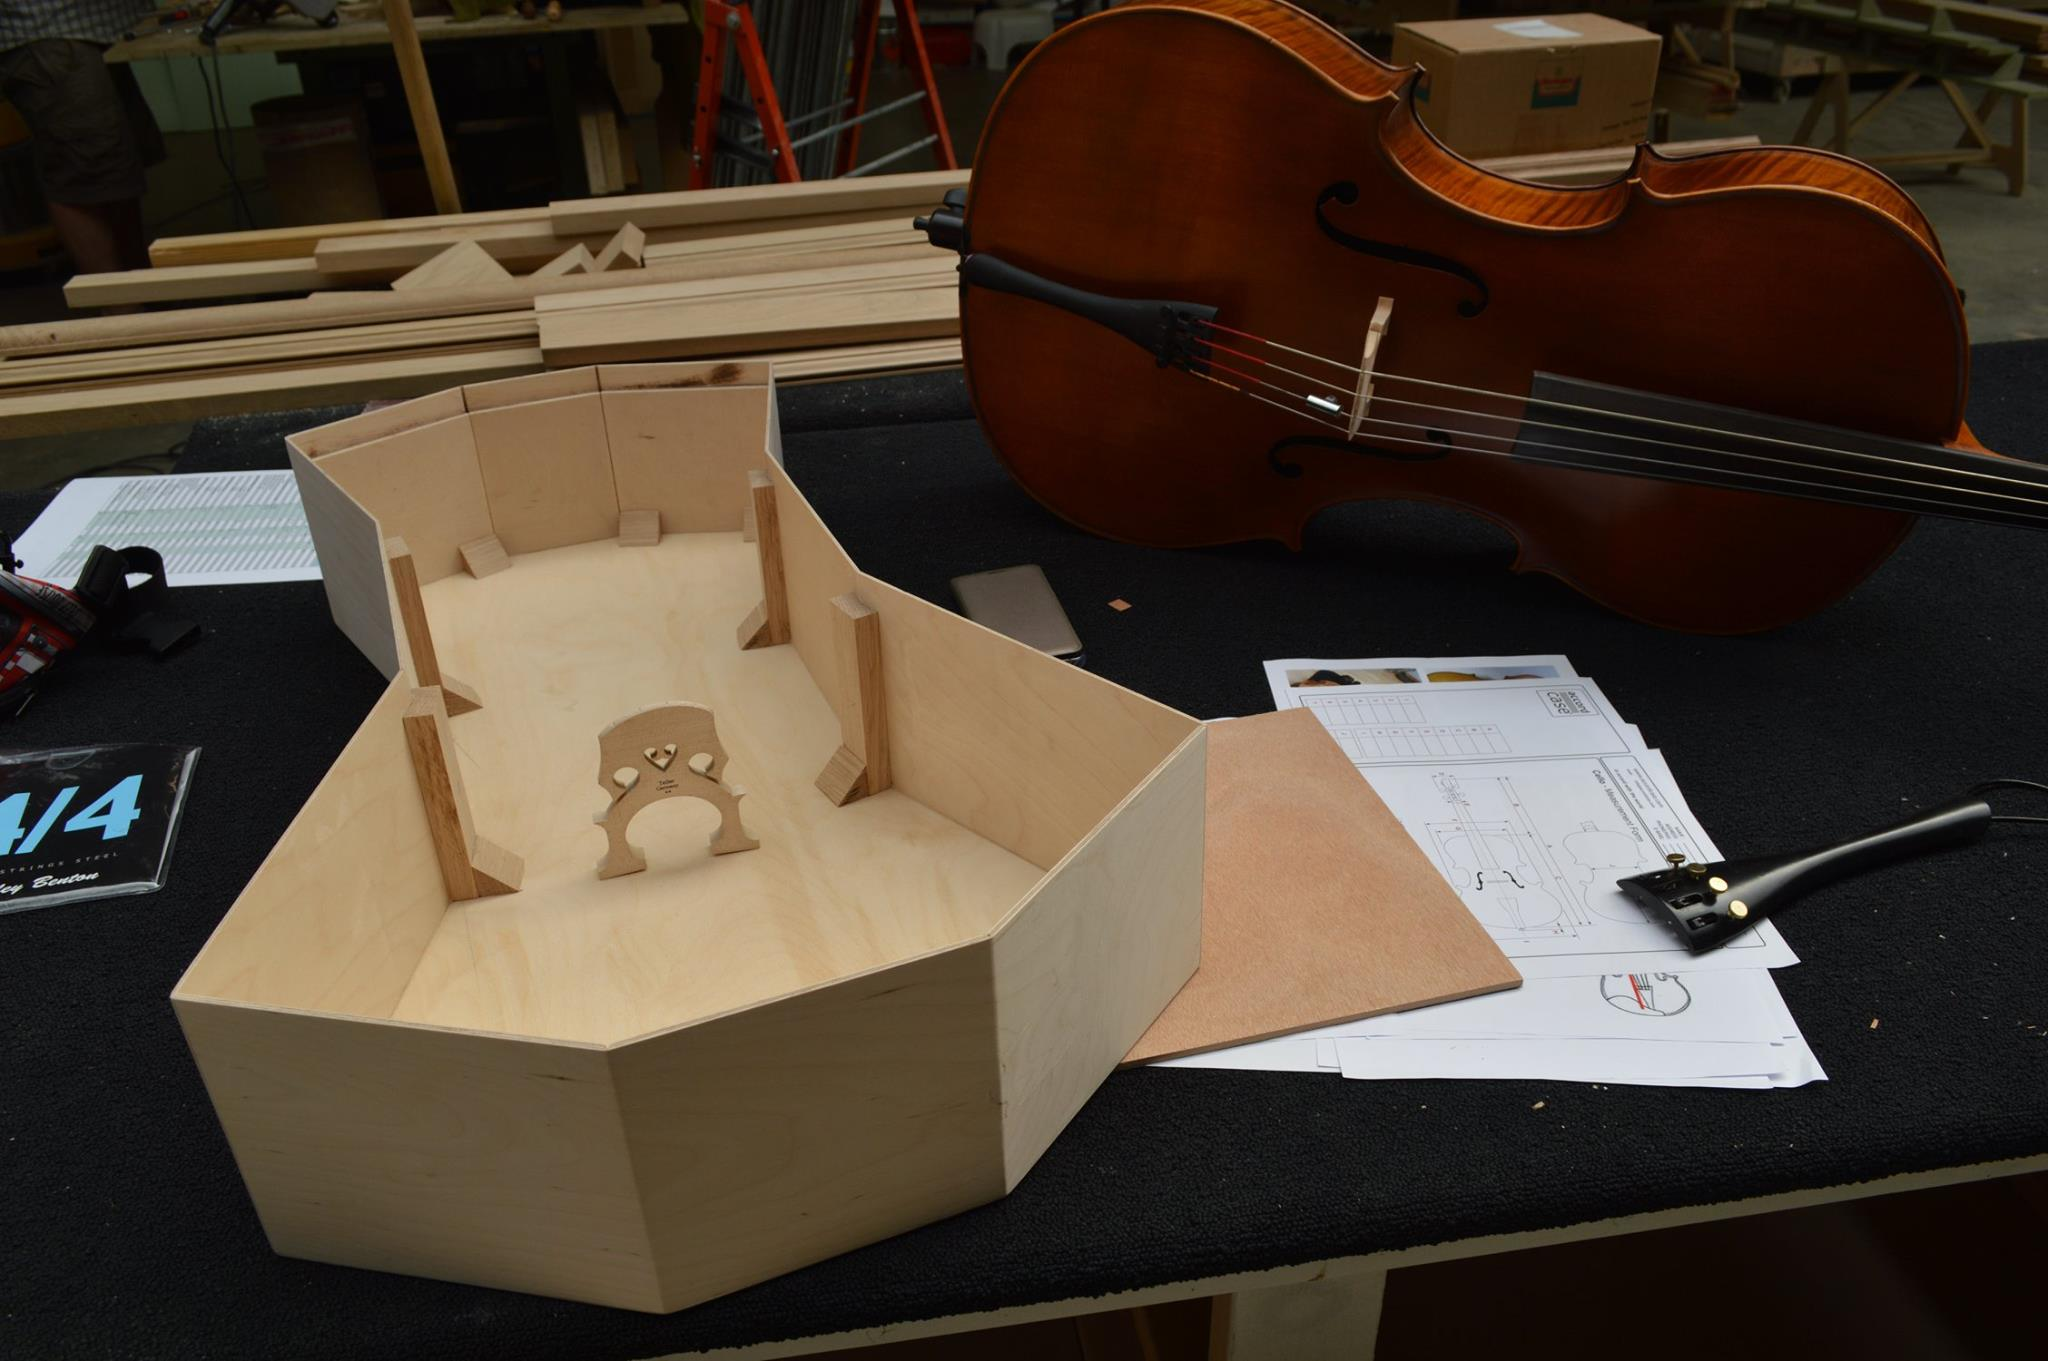 XPS Cello under construction by Anika BeauquesneXPS Cello under construction by Anika Beauquesne